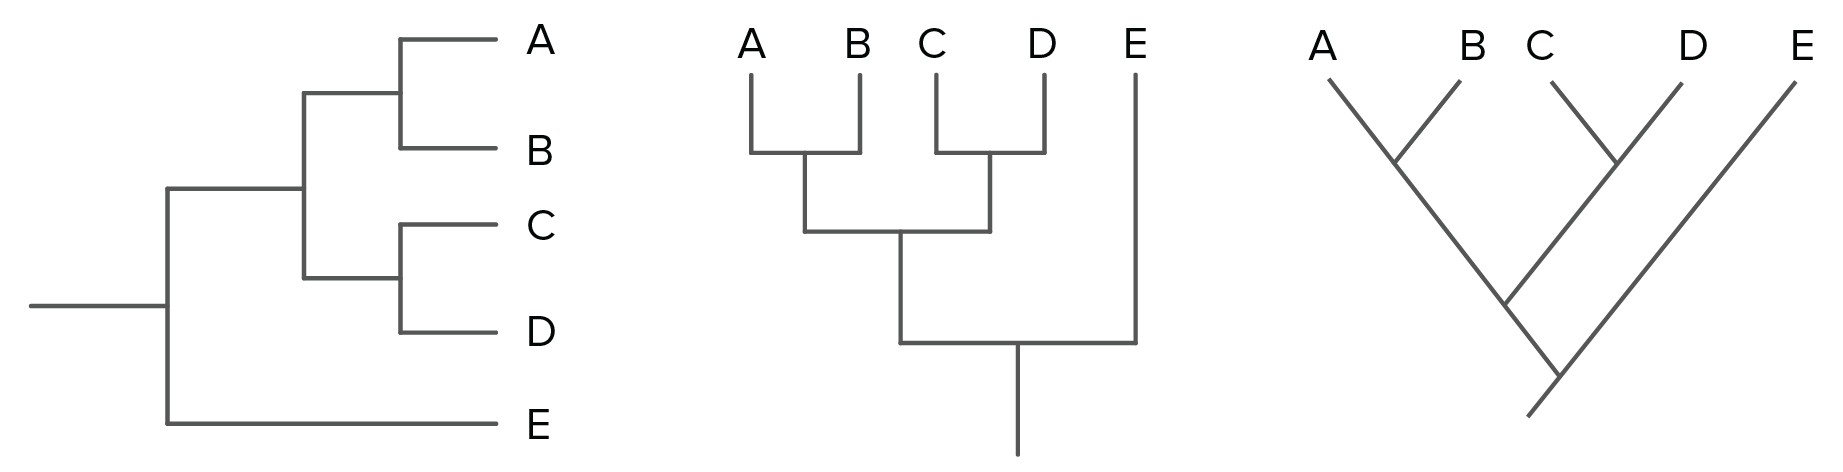 Drawing methods tree. Phylogenetic trees evolutionary article